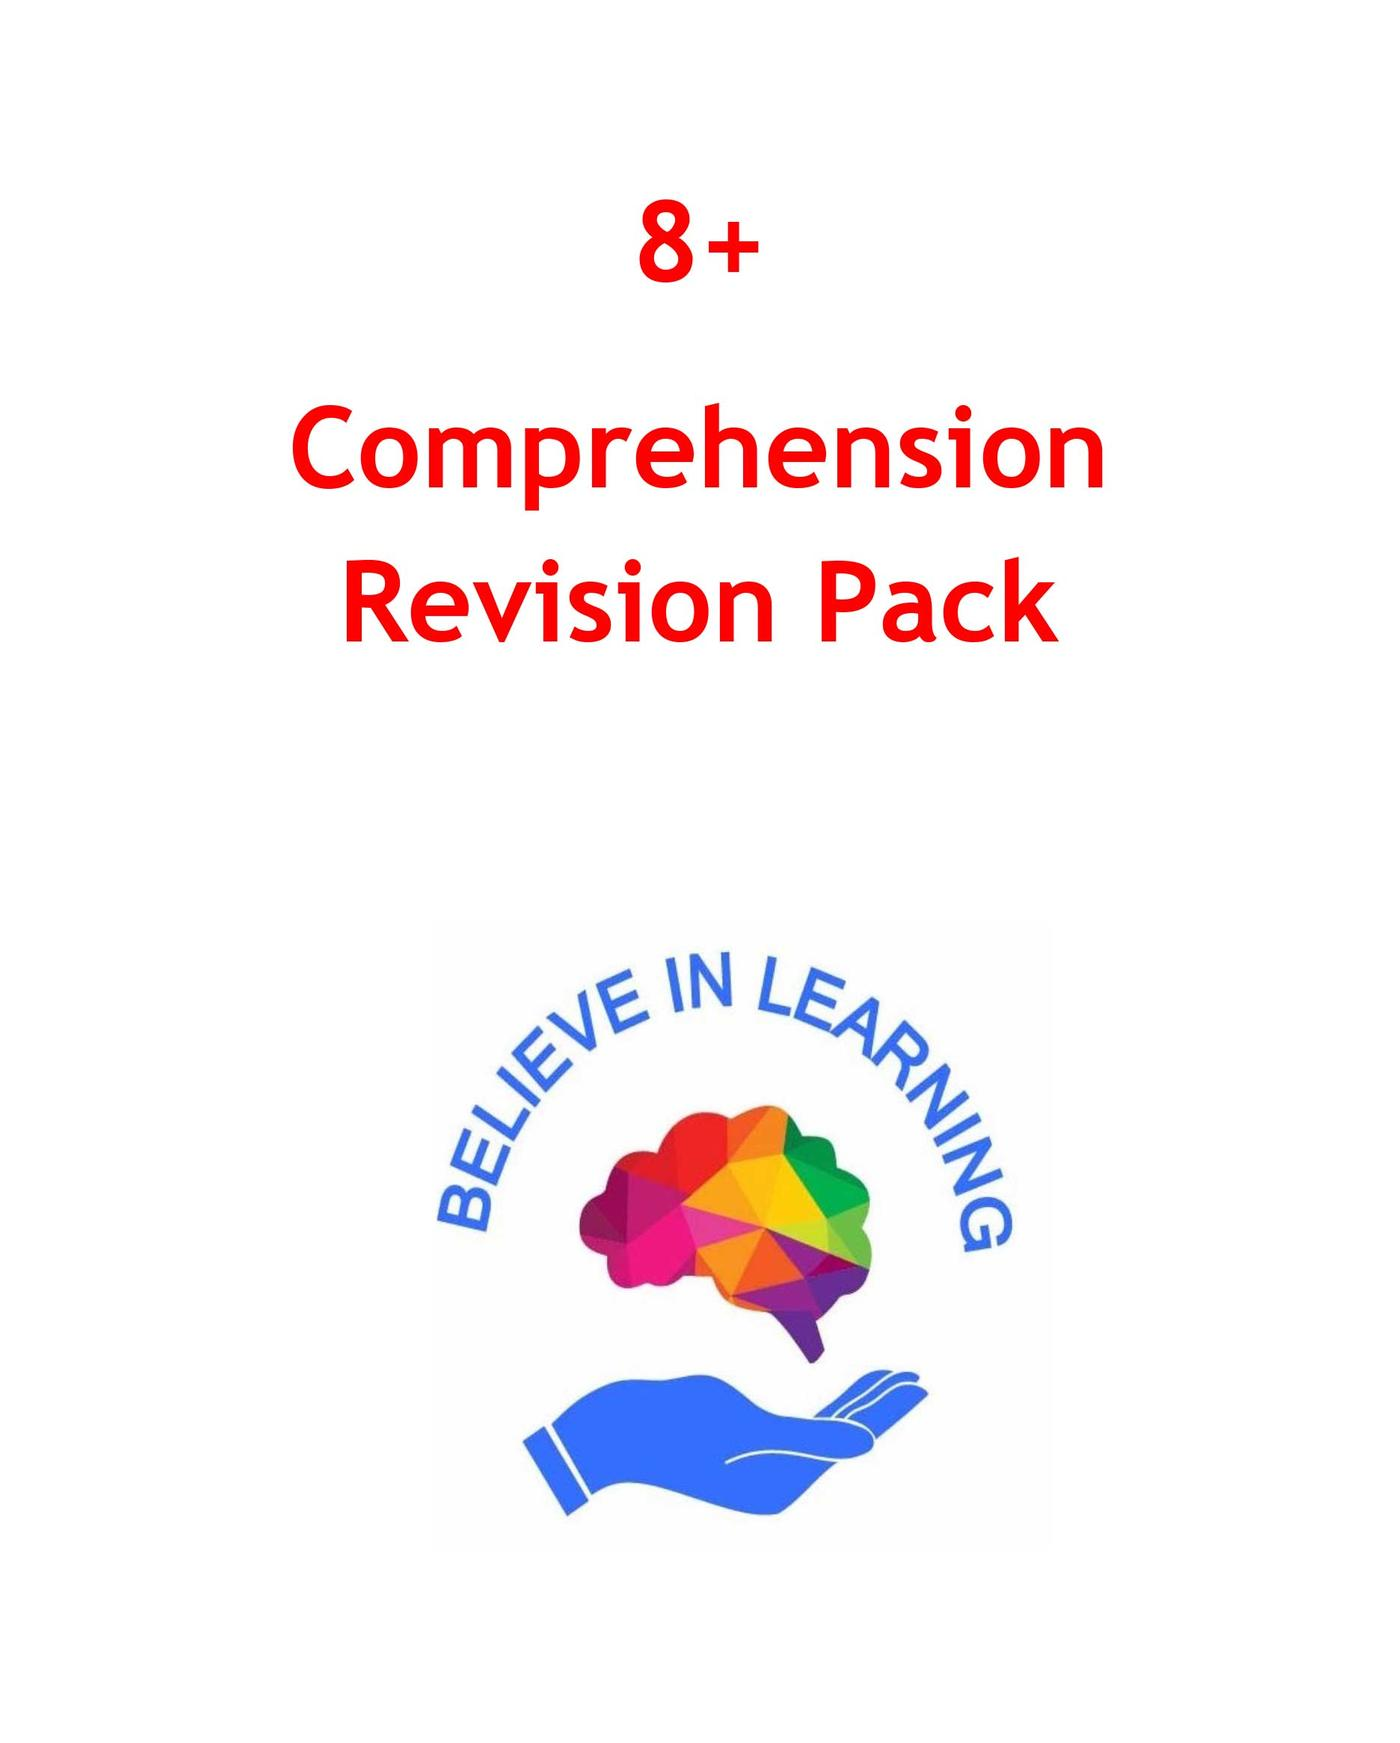 8+ Comprehension Revision Pack